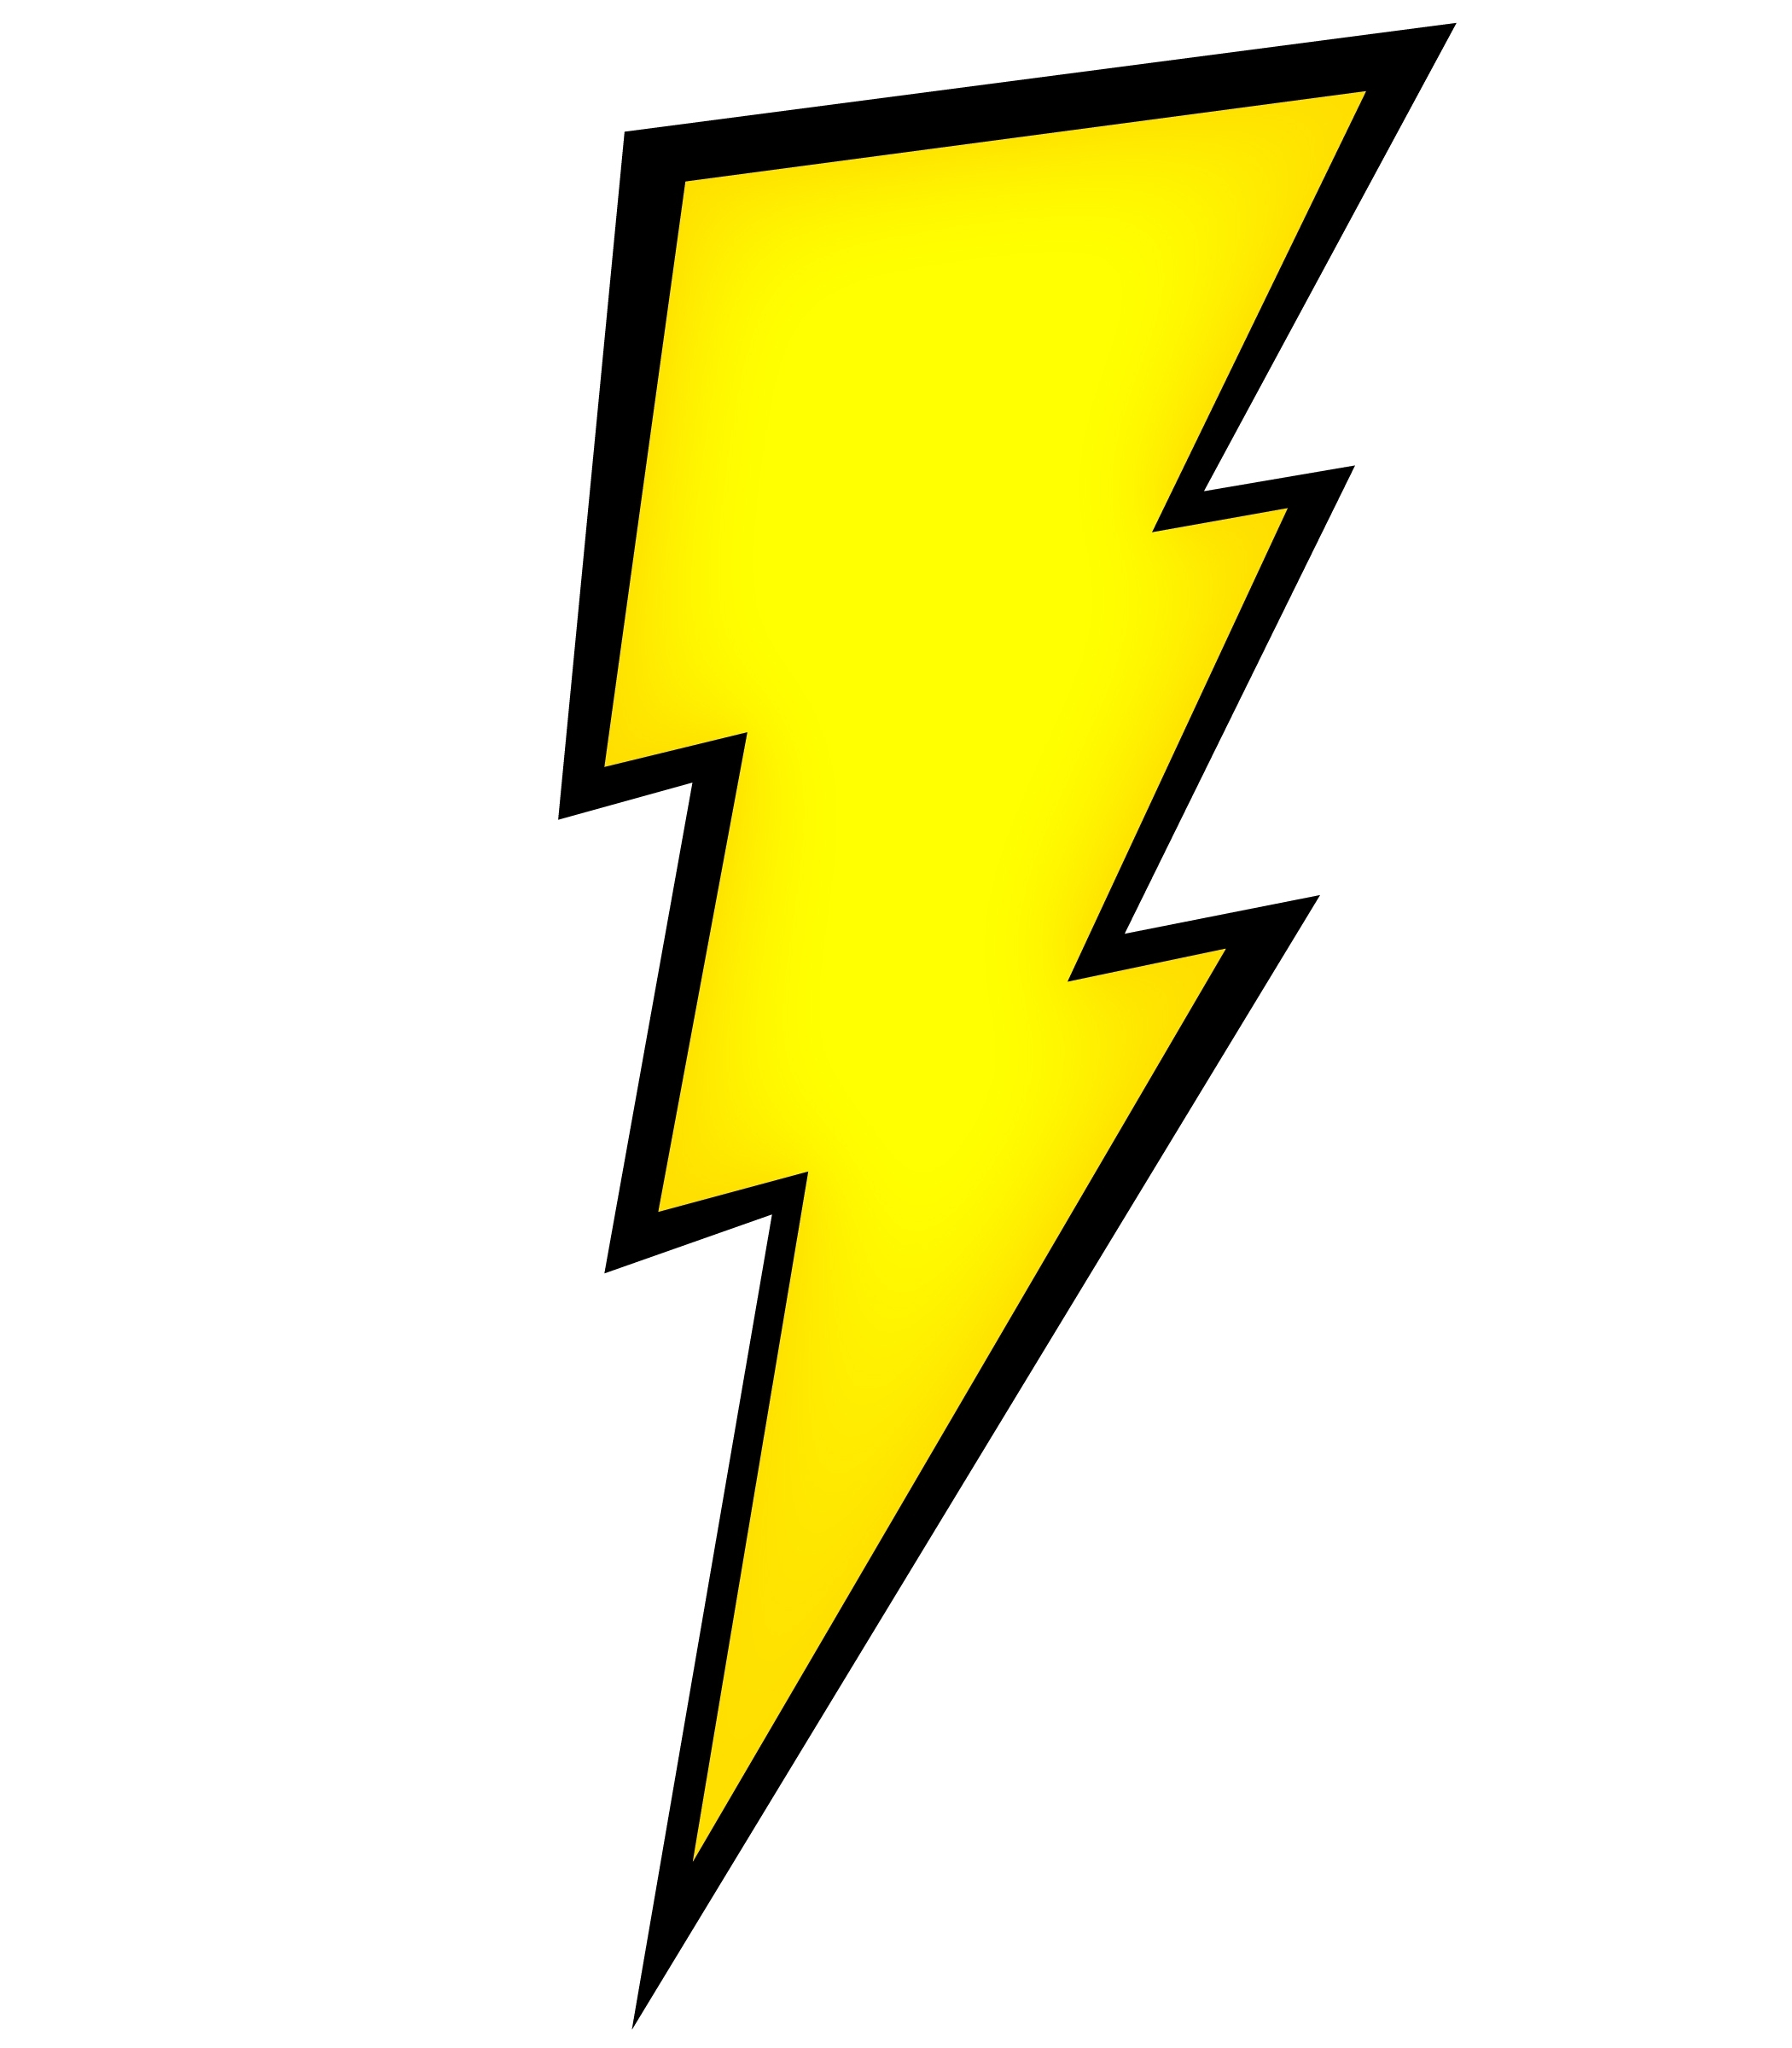 pin Drawn lightning thunderbolt #1 - Zeus Thunderbolt PNG